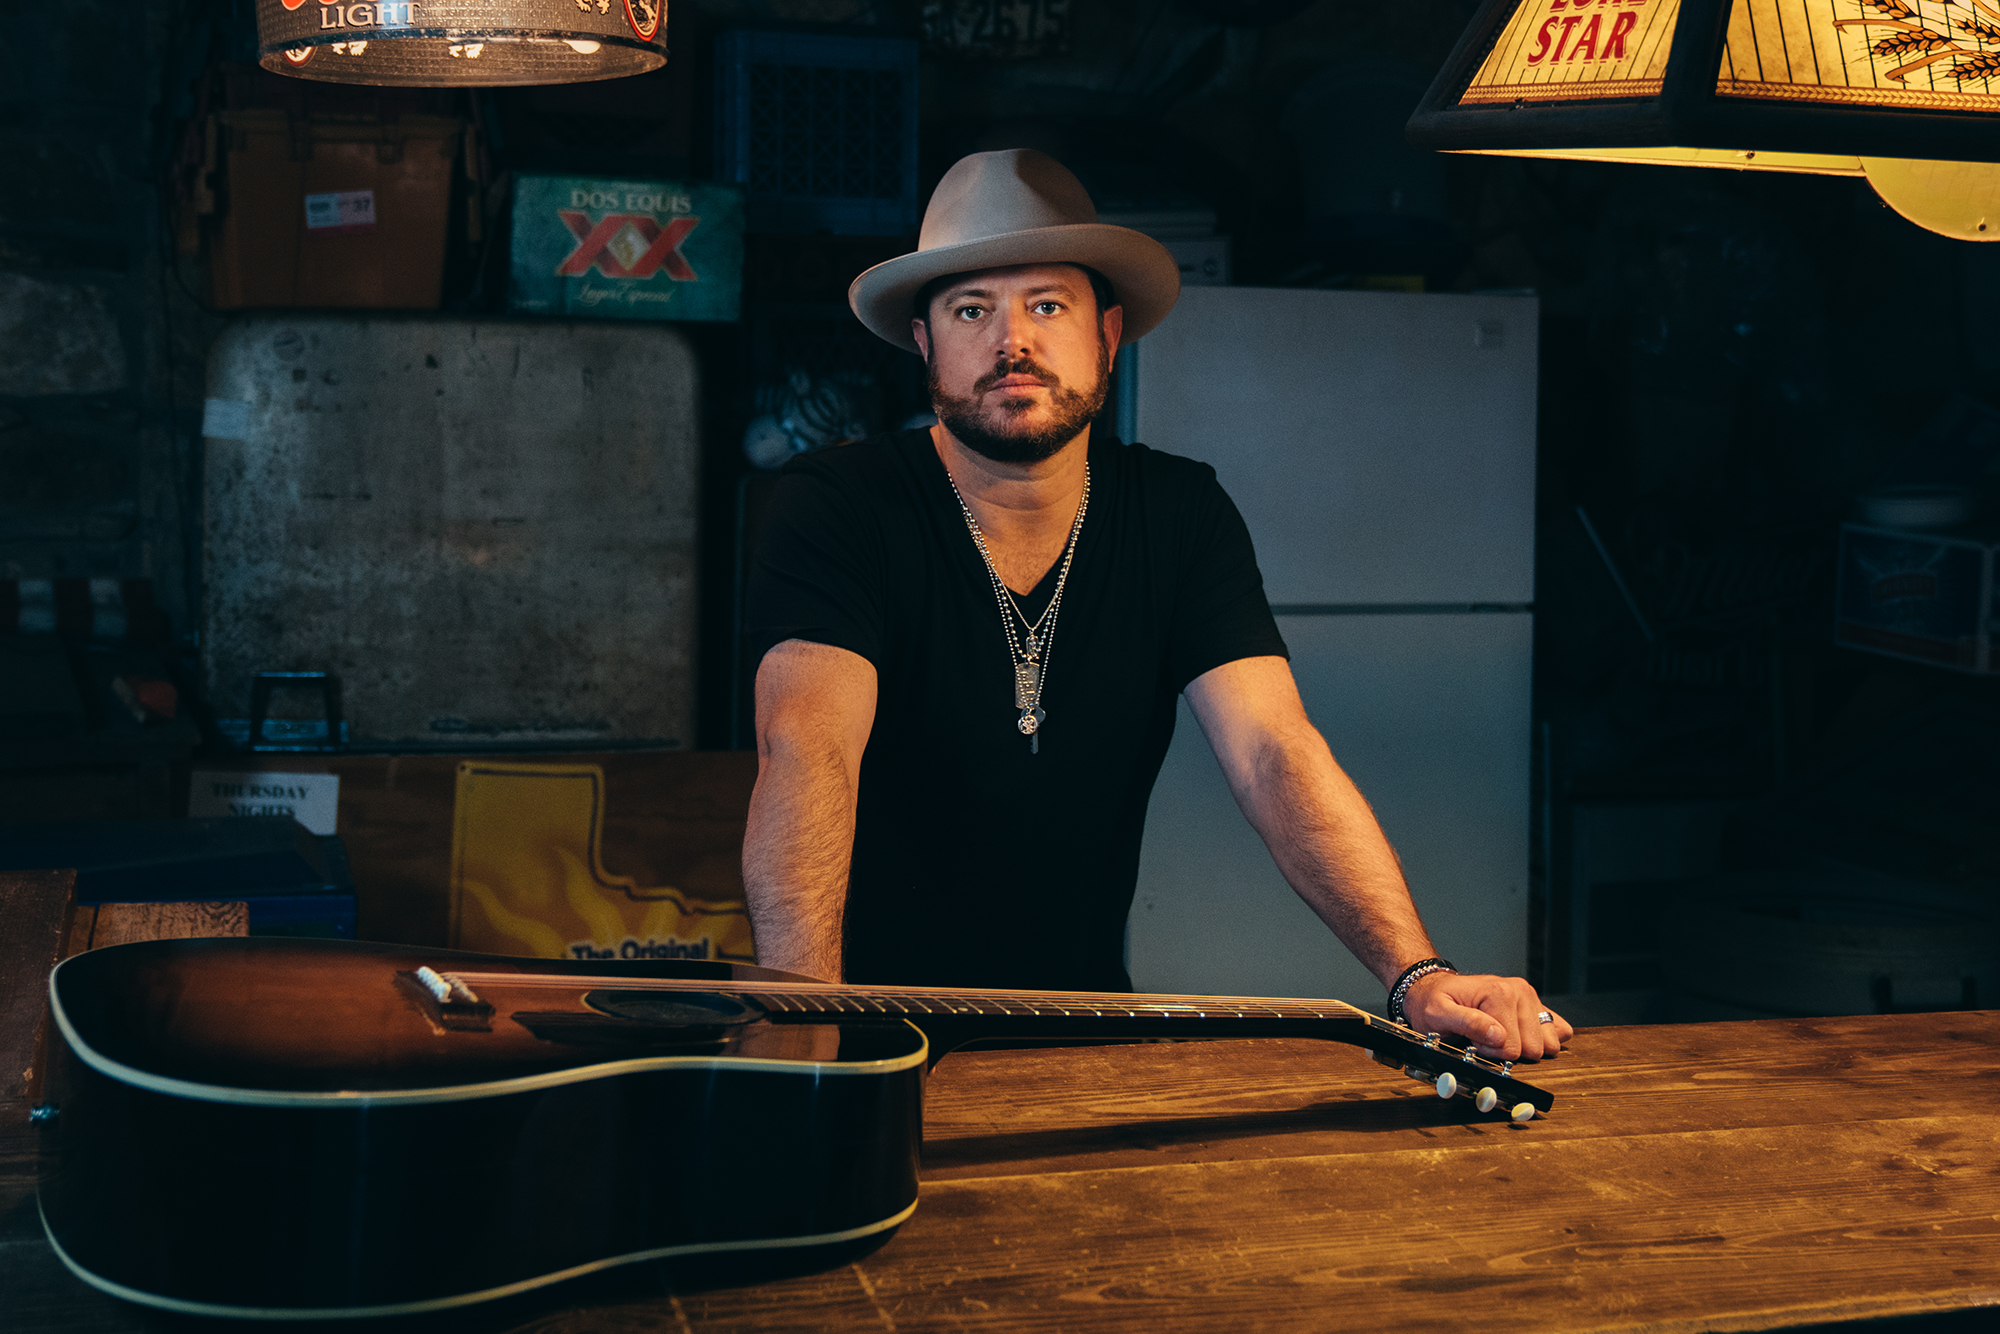 Wade Bowen's New Documentary Addresses Mental Health - Rolling Stone